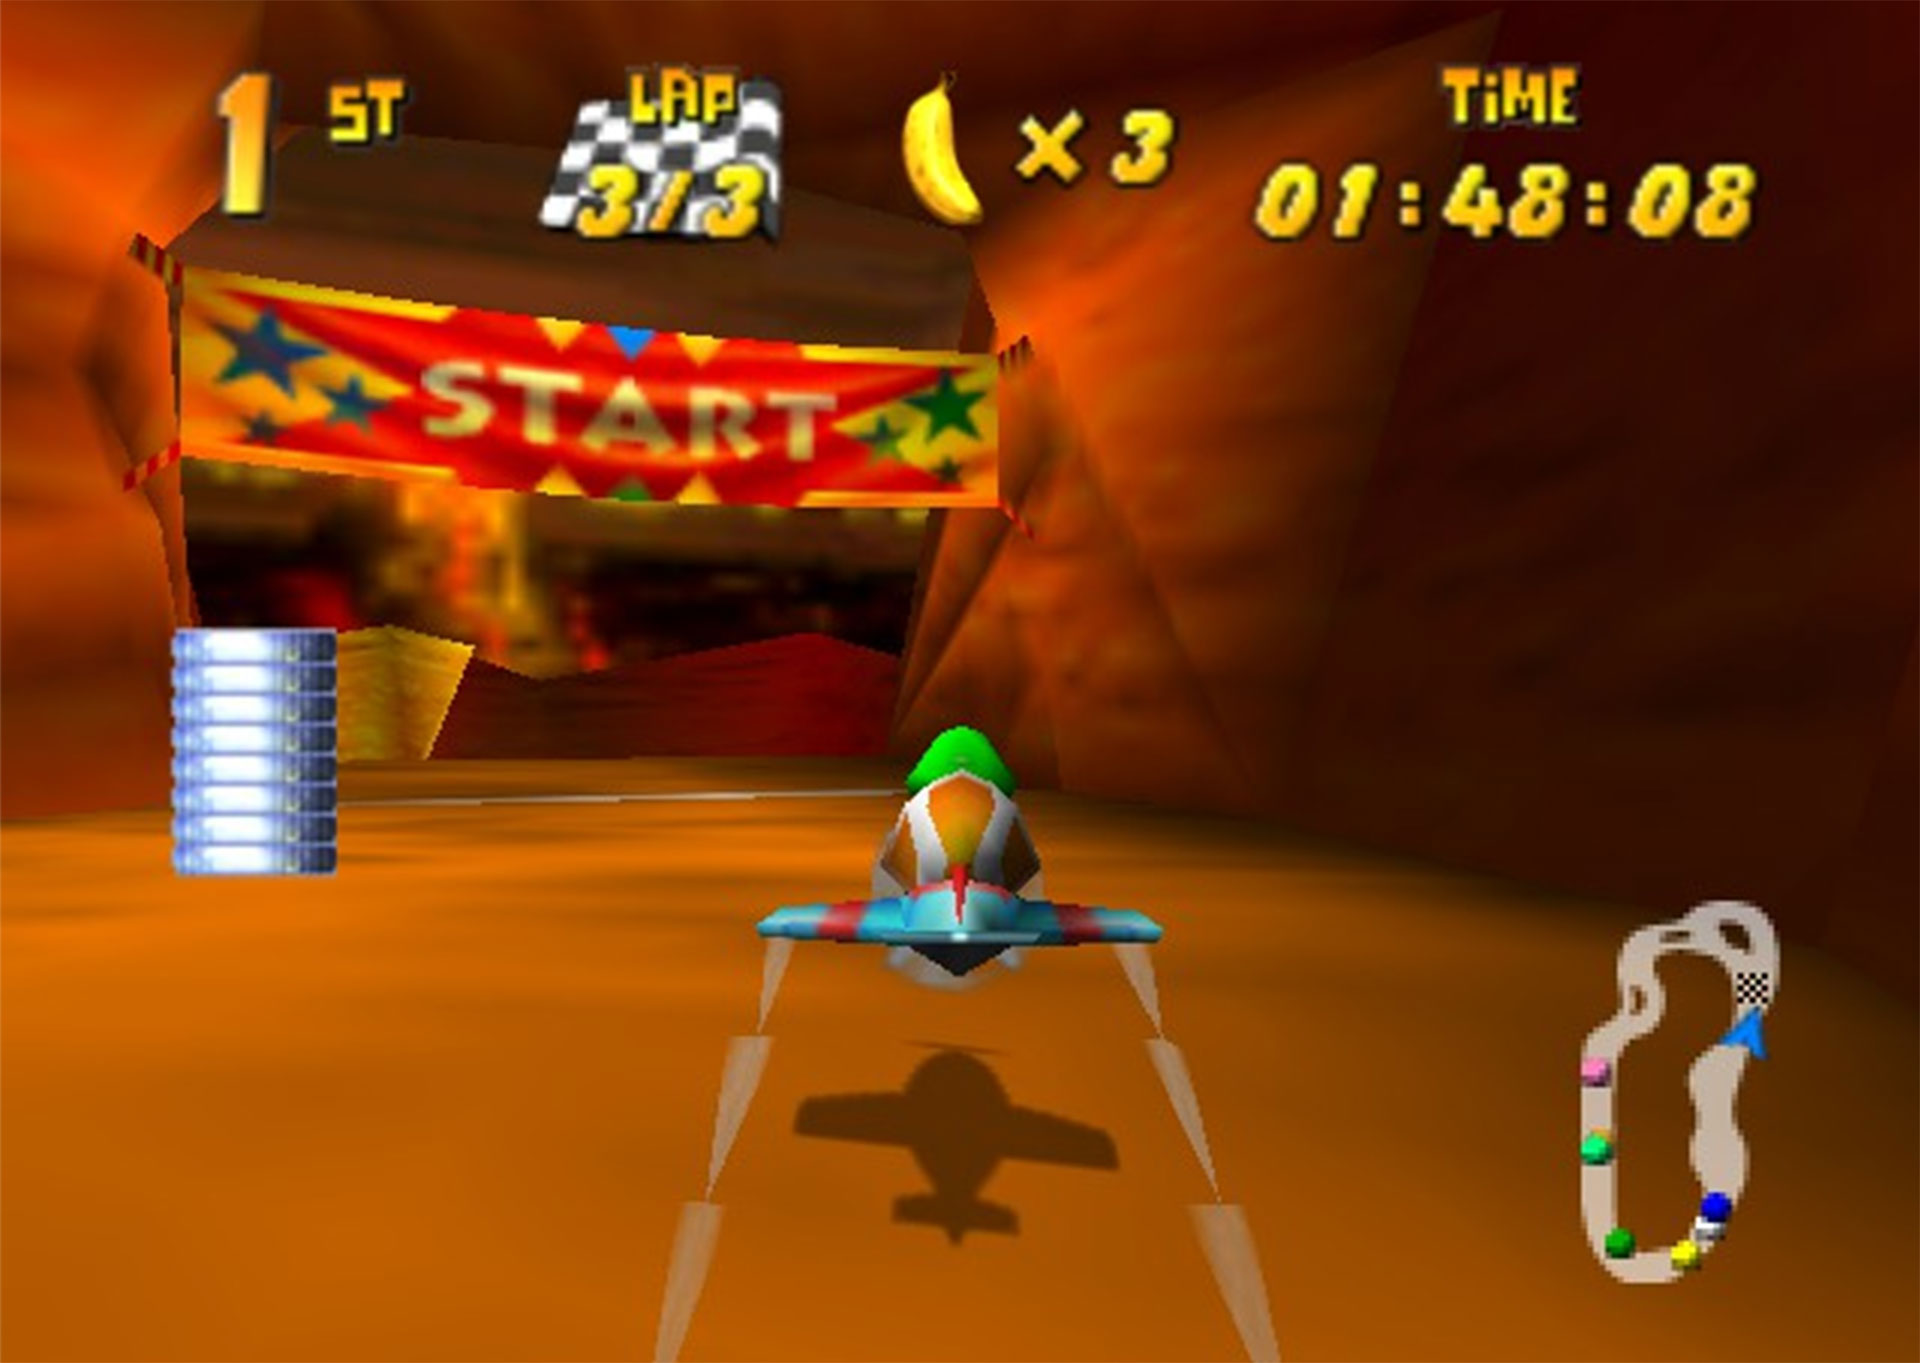 Another screenshot from Diddy Kong Racing.